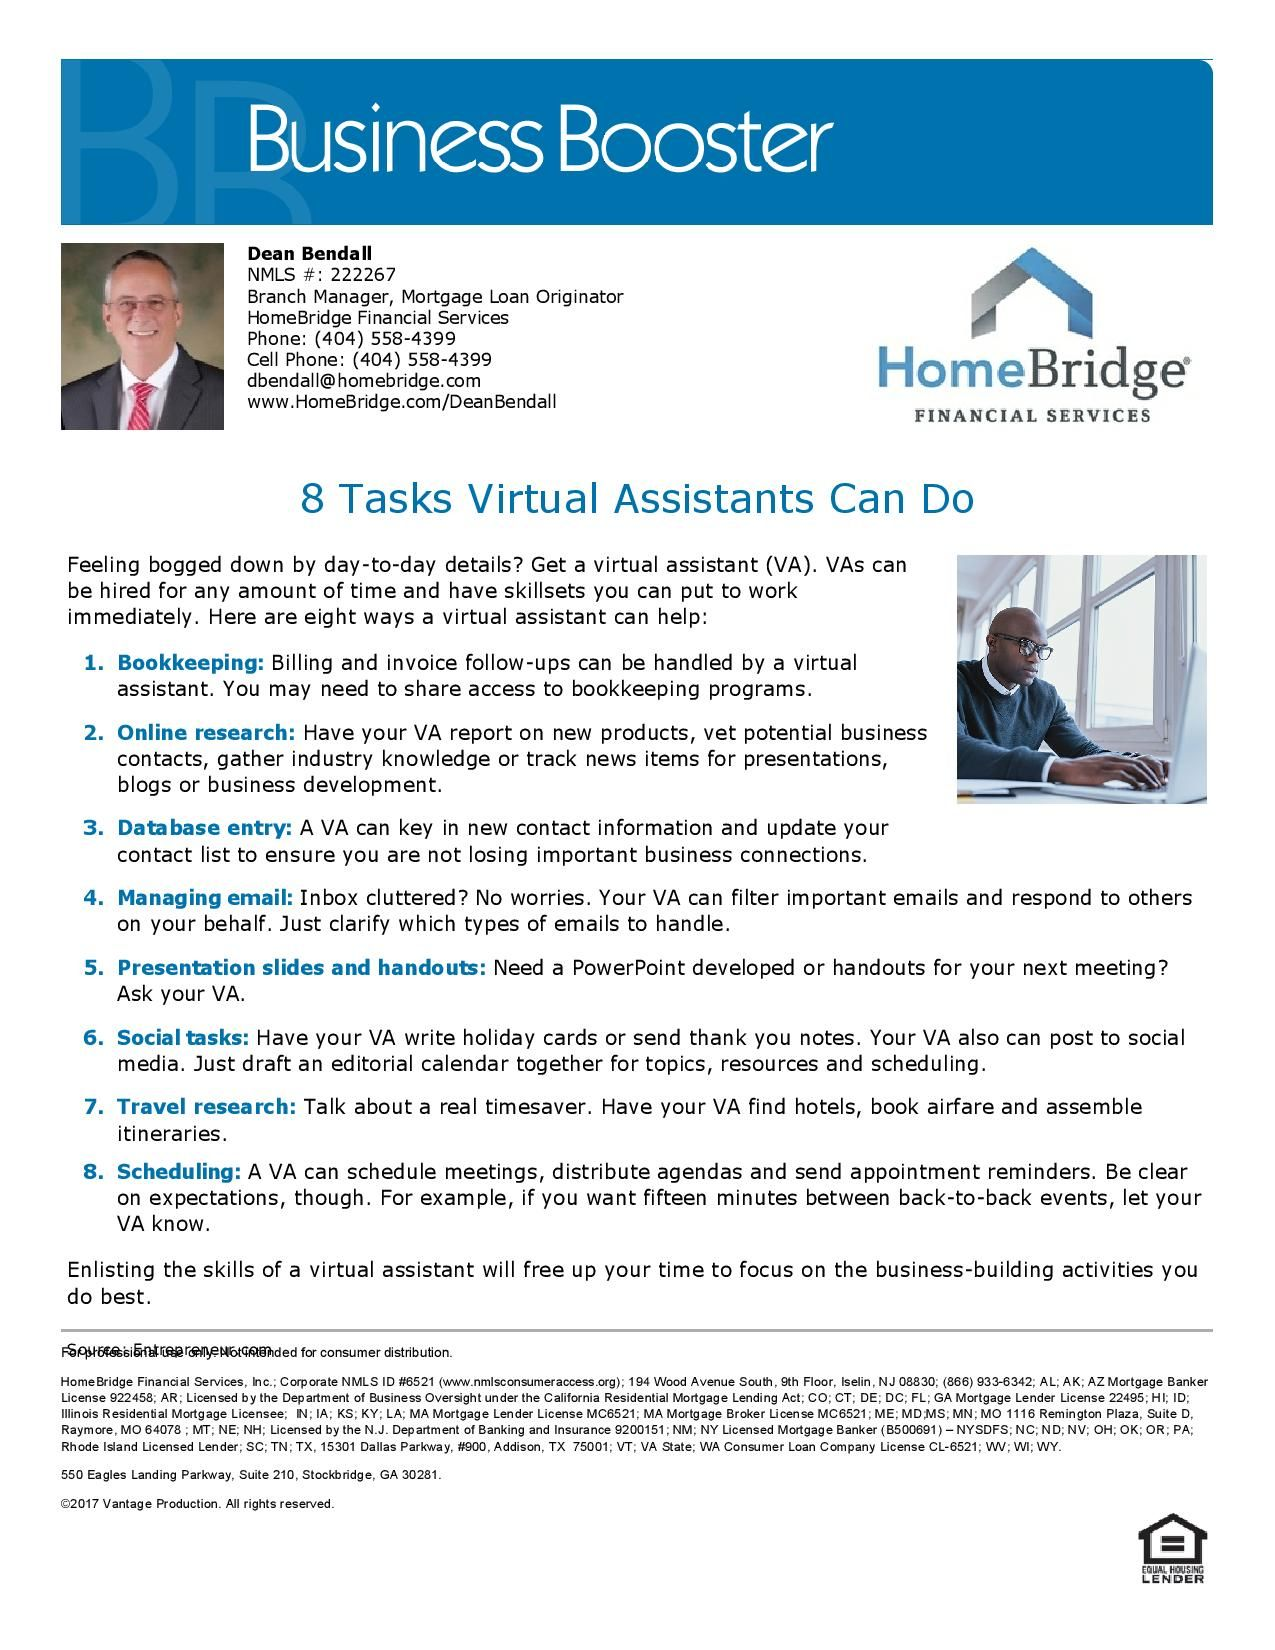 Tasks Virtual Assistants Can Do! | Inside Lending | Mortgage